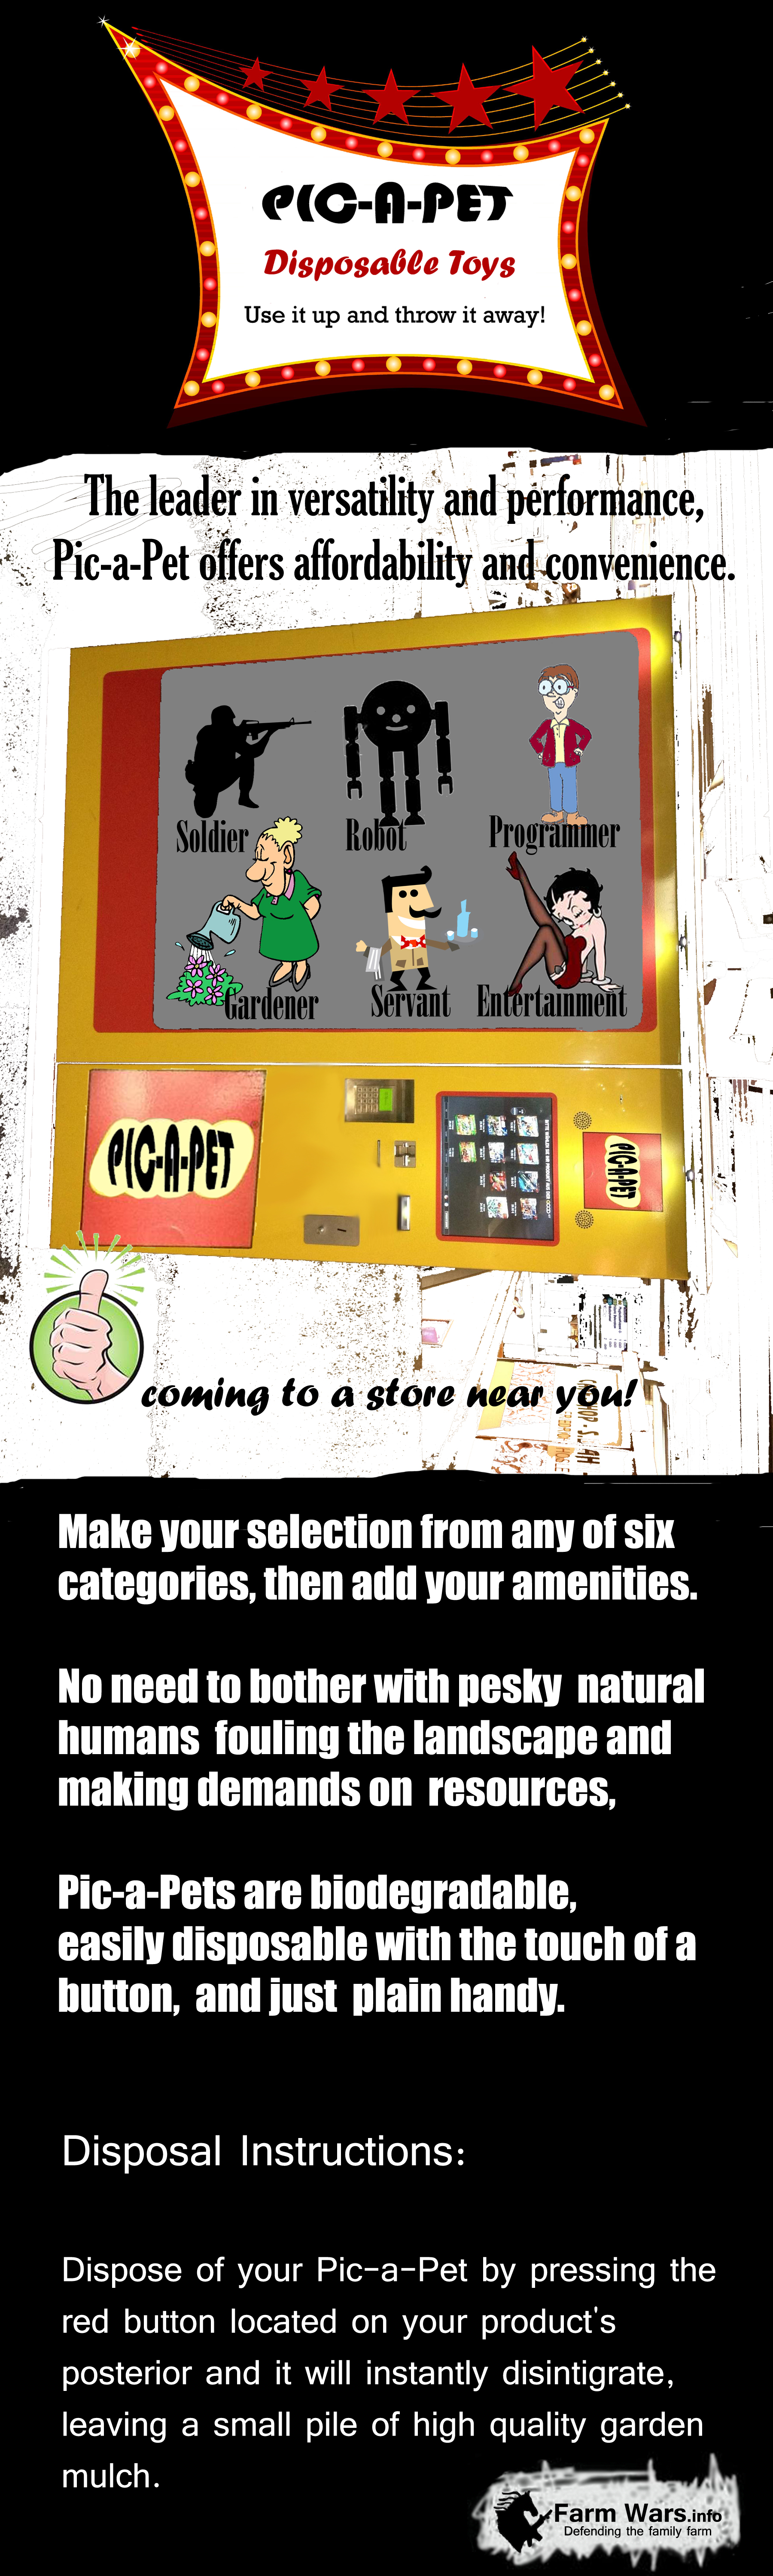 PicaPet Vending Machine